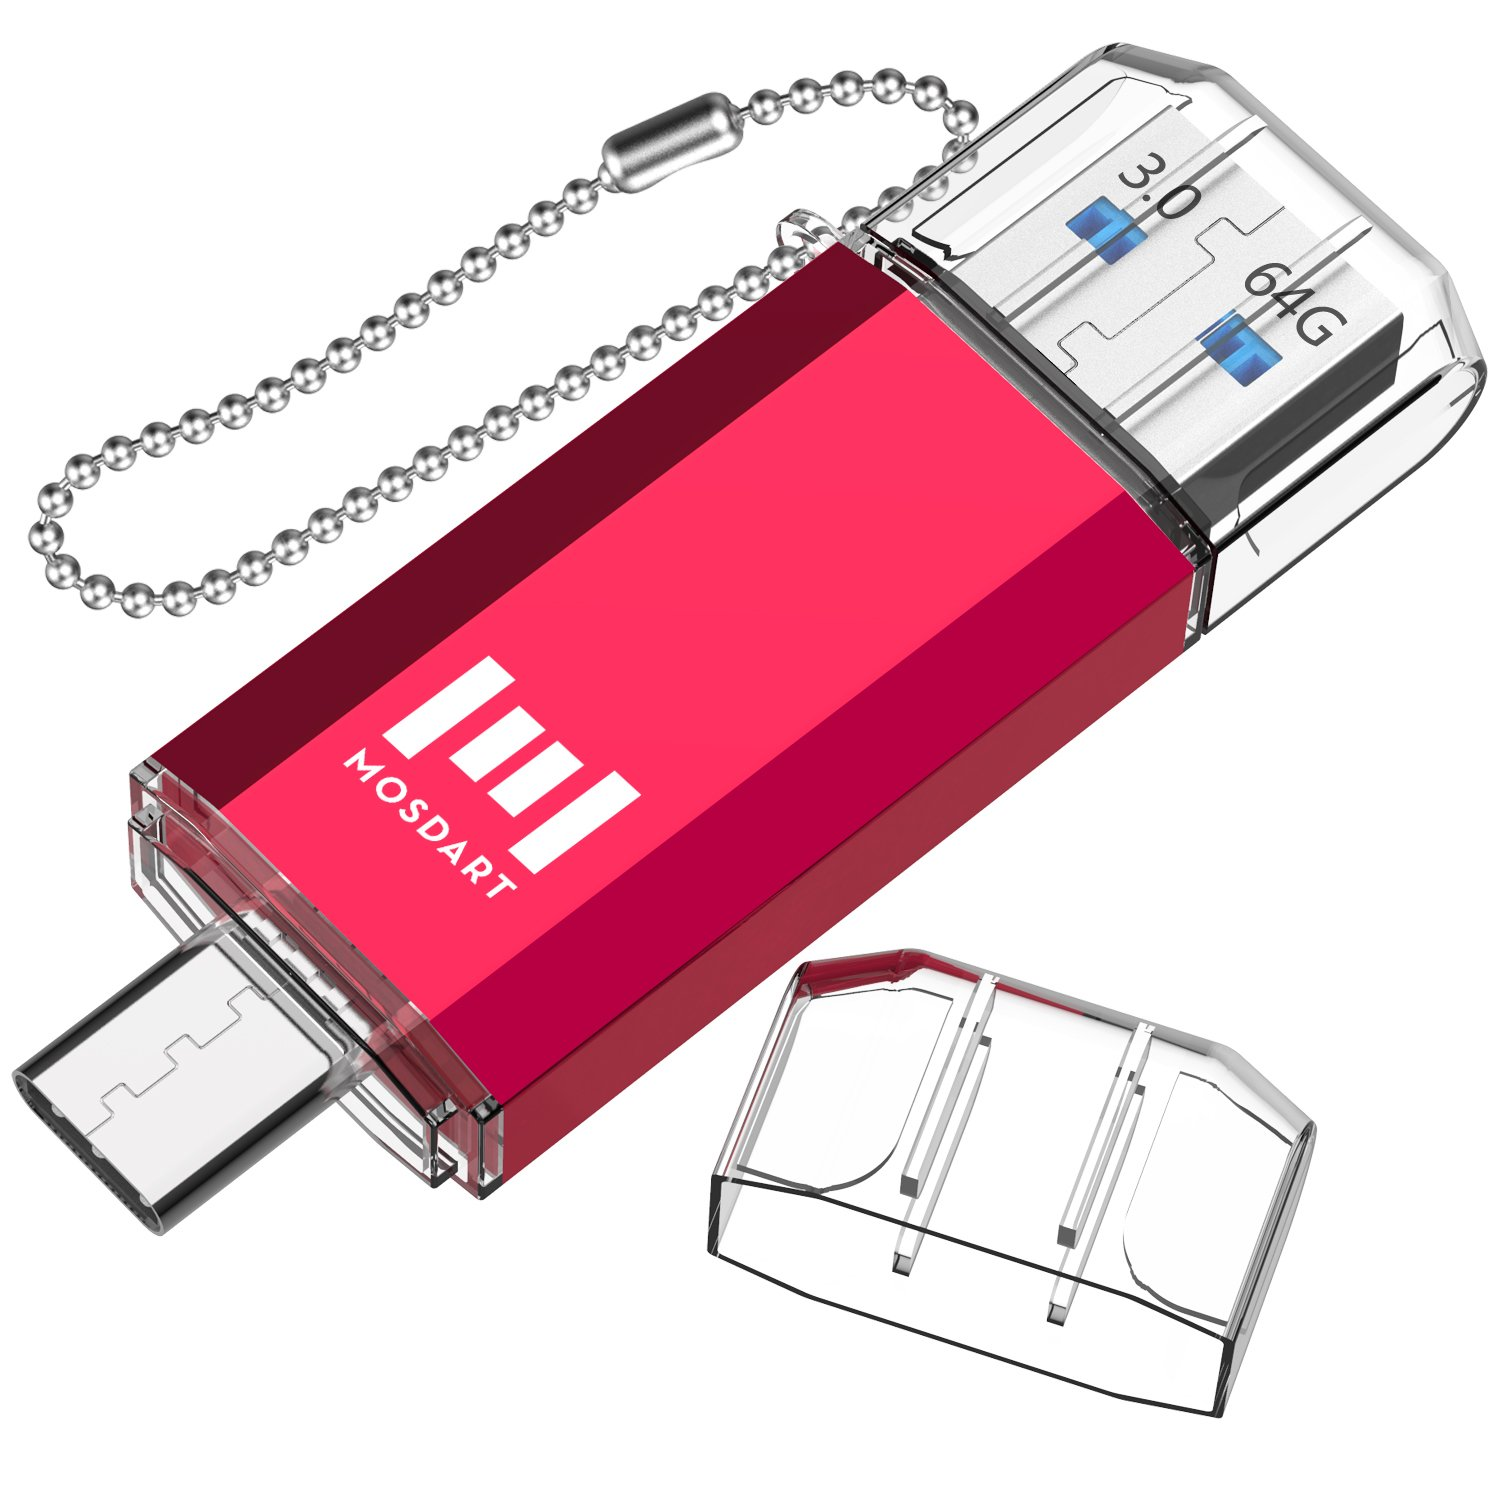 MOSDART 64GB Type C Dual Flash Drive (USB-A 3.0 / USB-C3.0) High Speed for USB C Smartphones,Tablets & New Macbook,Red (NOT for Micro USB Port)